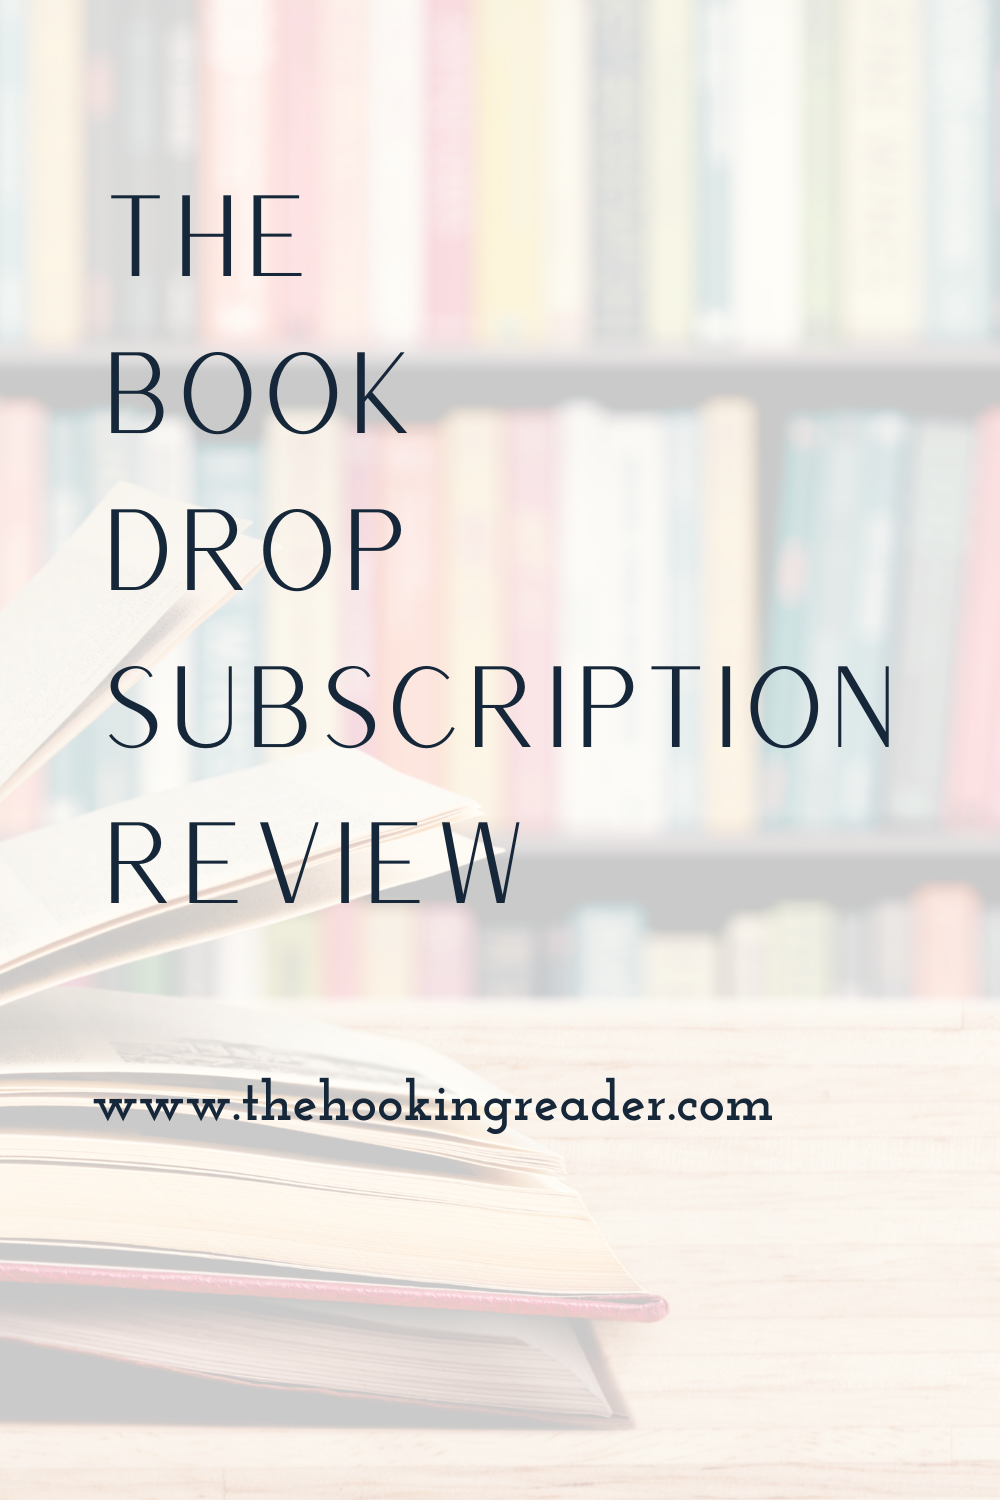 The Book Drop Subscription Review